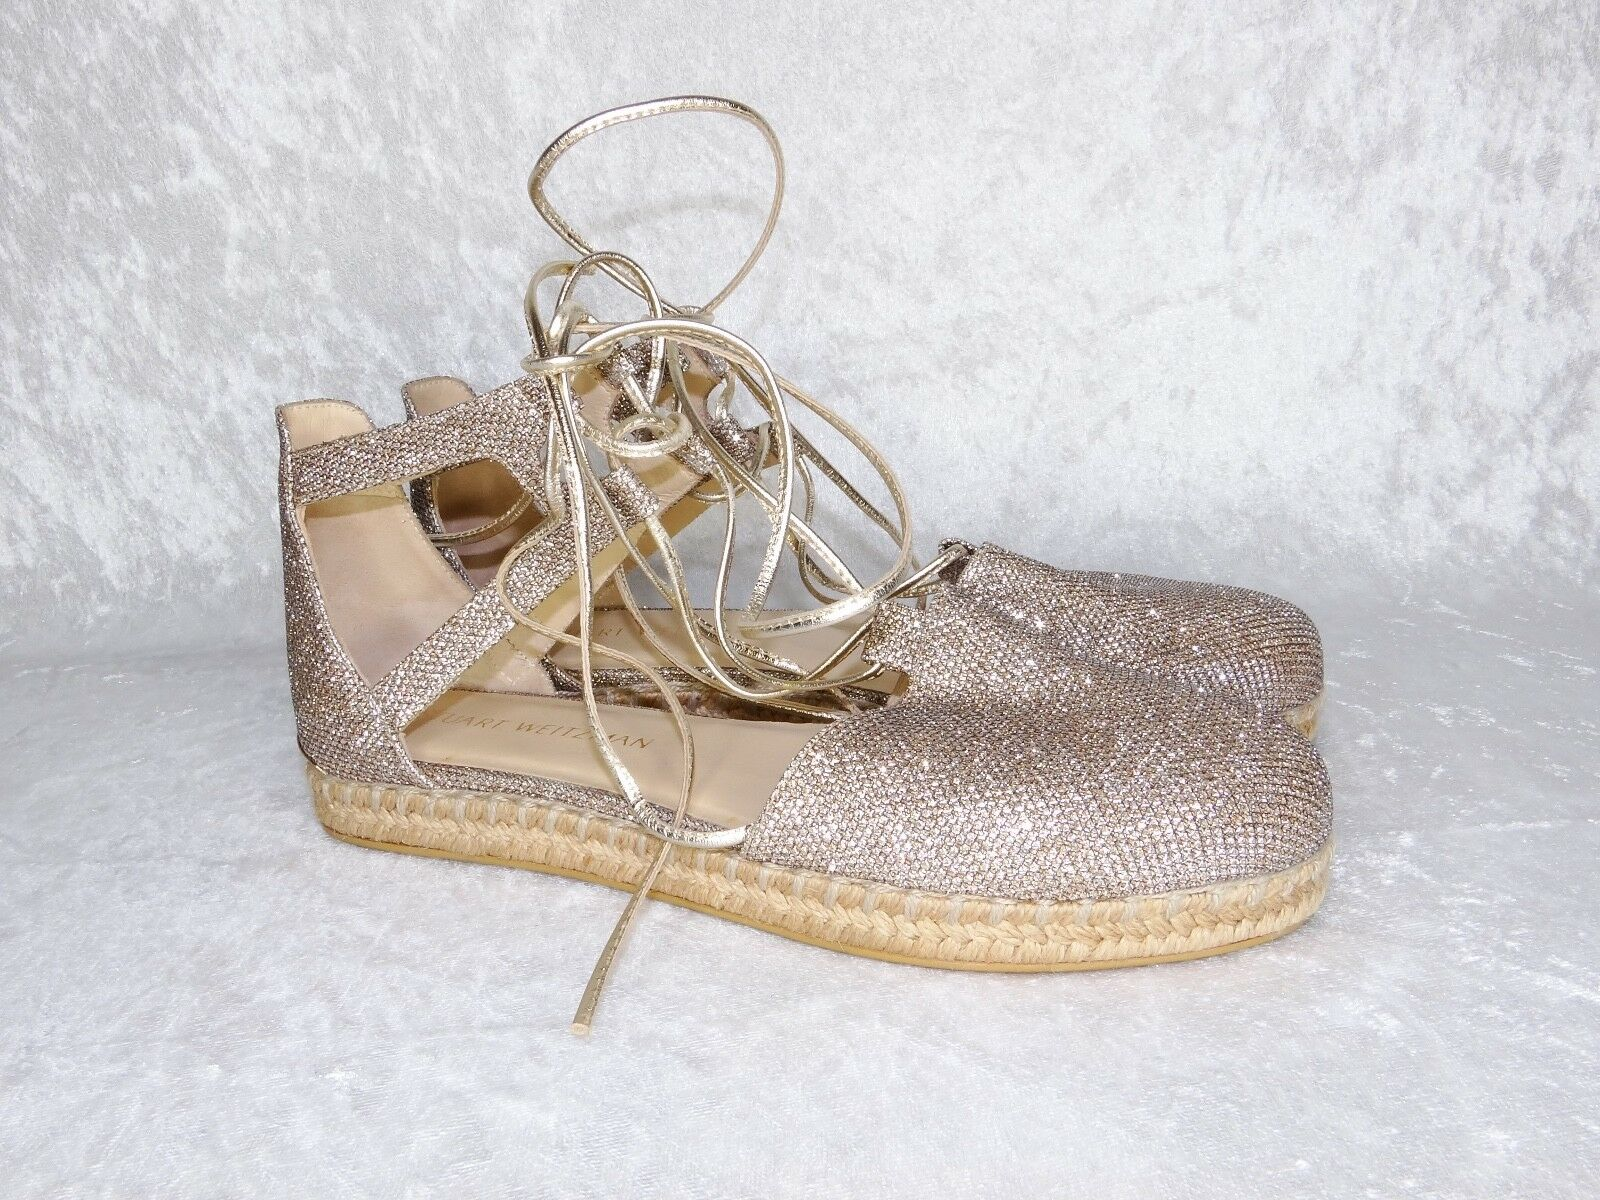 MARNI Studded Oxford Shoes 39.5 Size 39.5 Shoes fits US size 8.5 - 9 Leather Lace-up Italy 8aea91